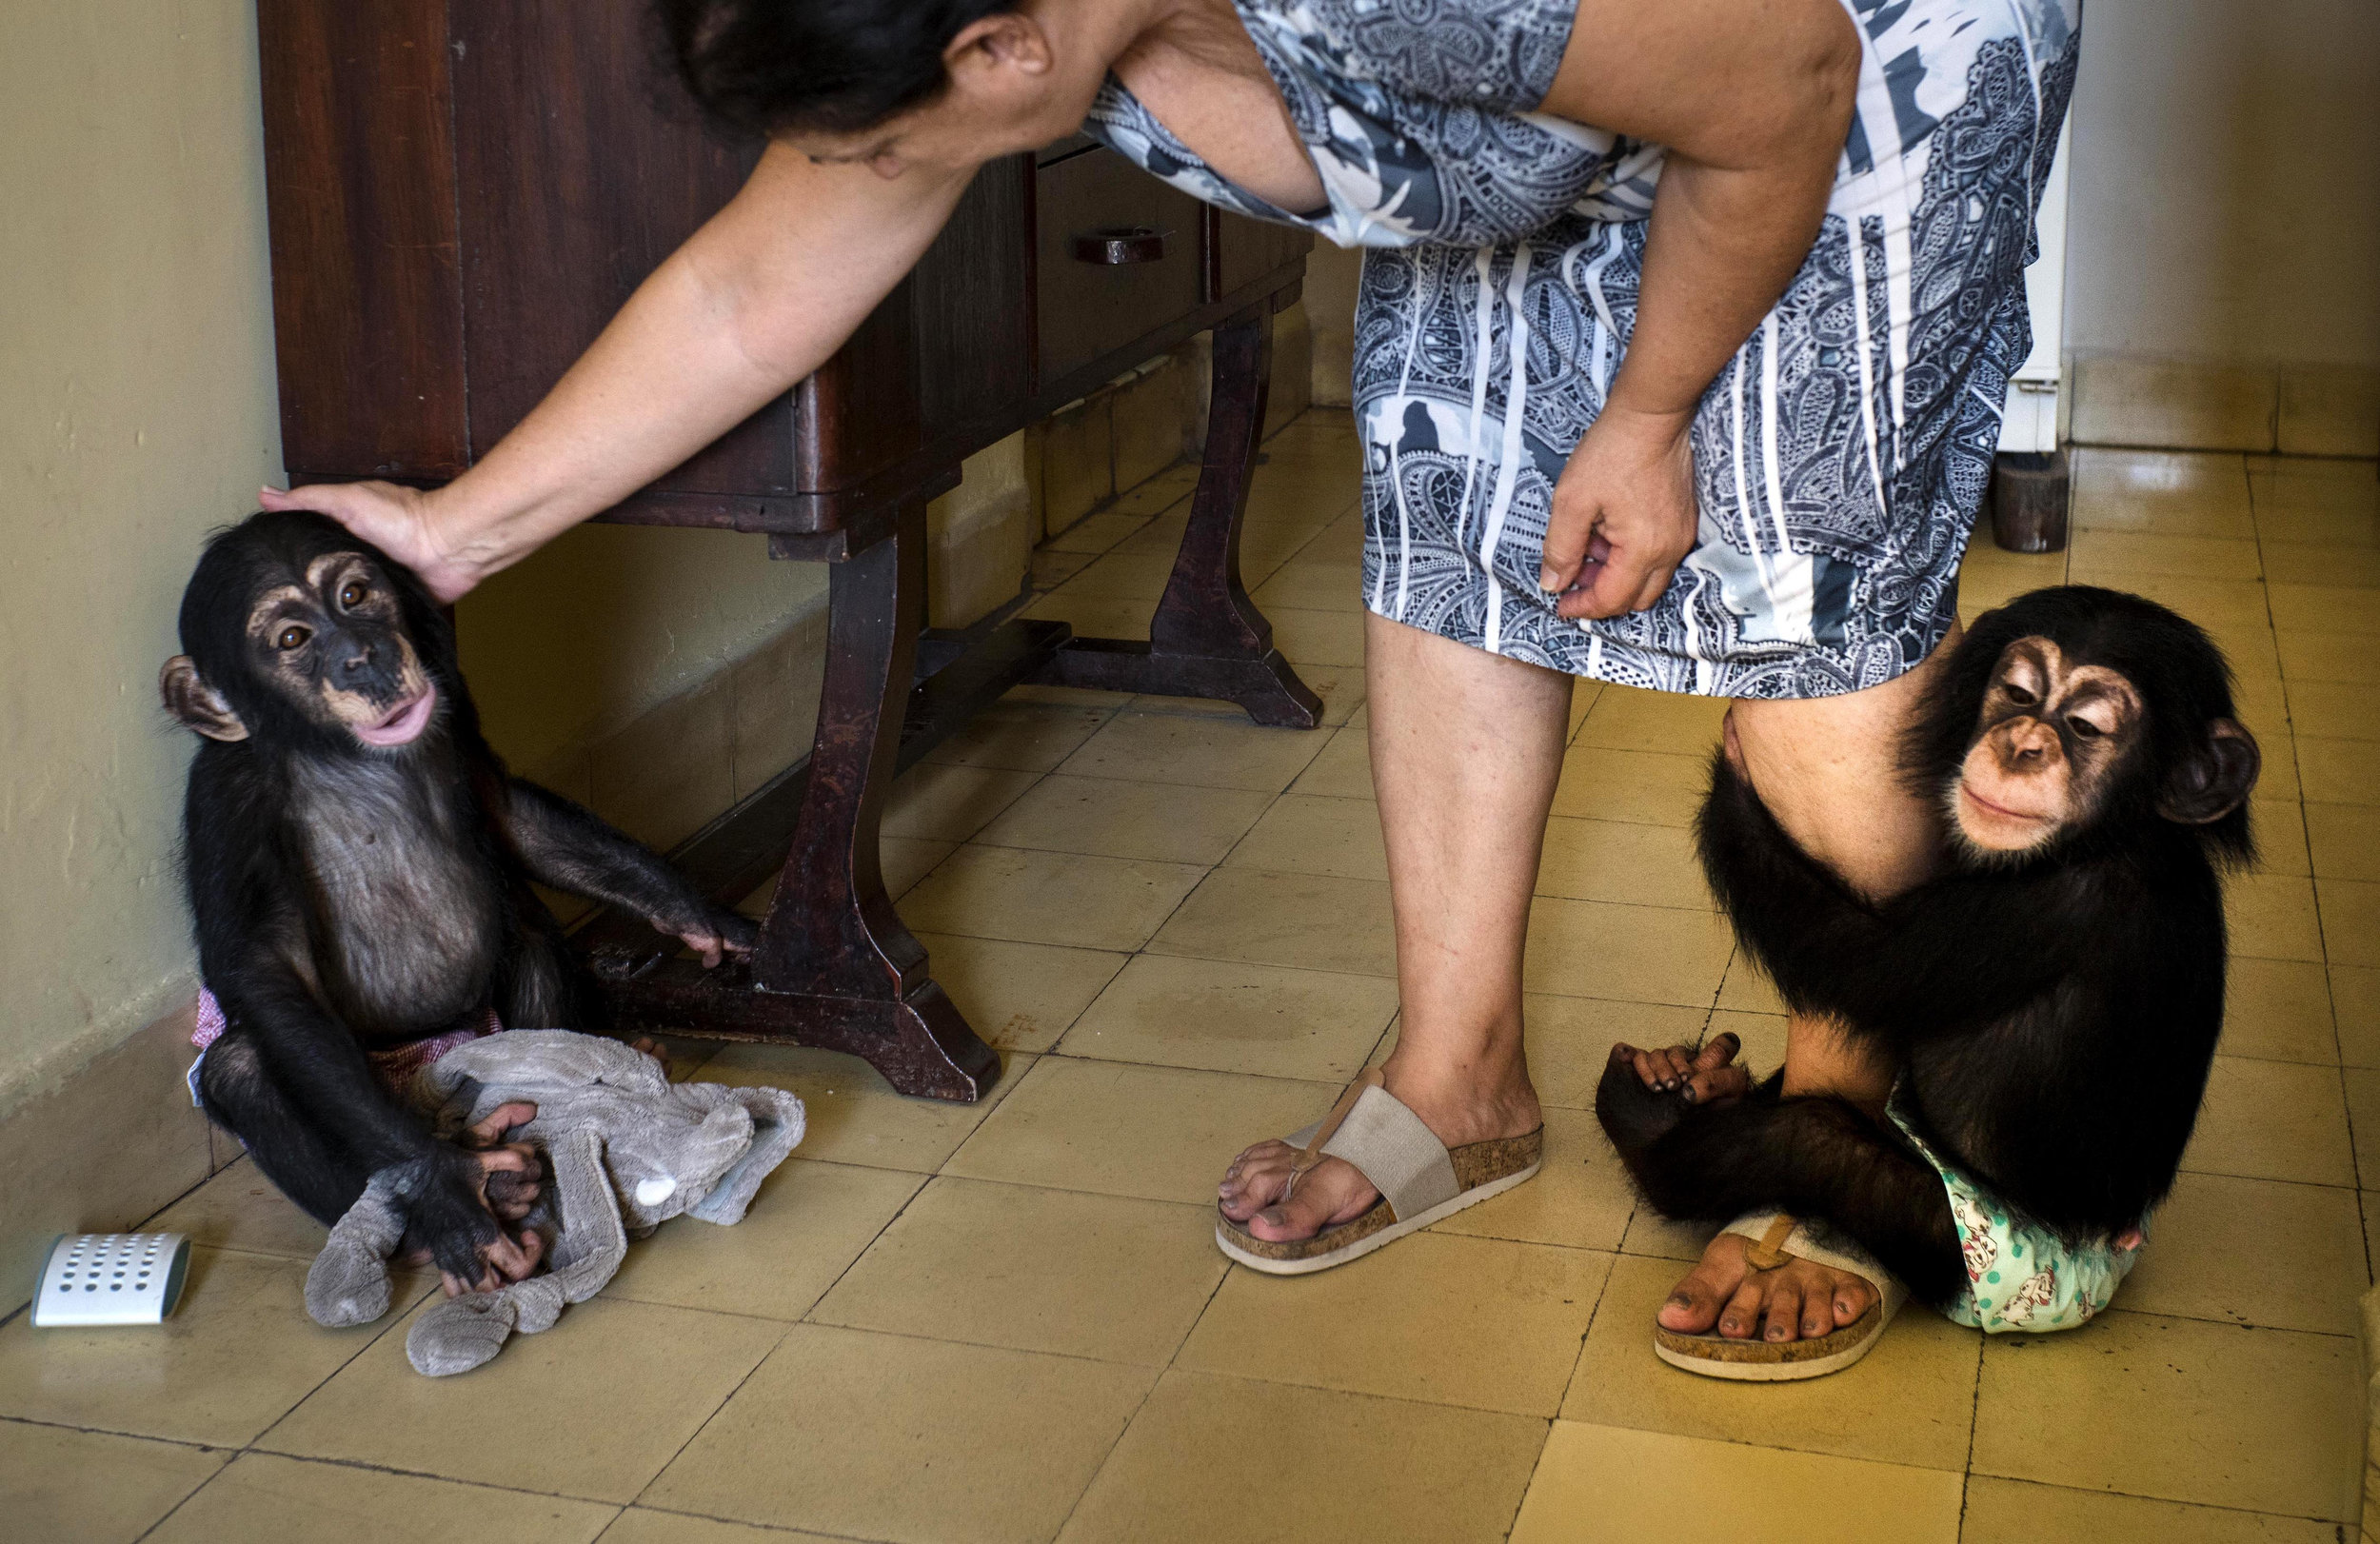 In this April 4, 2017 photo, Zoologist Marta Llanes caresses baby chimpanzee Anuma II, left, while Ada hangs on to her leg, at Llanes' apartment in Havana, Cuba. She has forgiven them every transgression. It's hard to stay angry at a baby chimpanzee when it clambers up your leg and into your arms and plants a kiss on your cheek in a plea for forgiveness. (AP Photo/Ramon Espinosa)